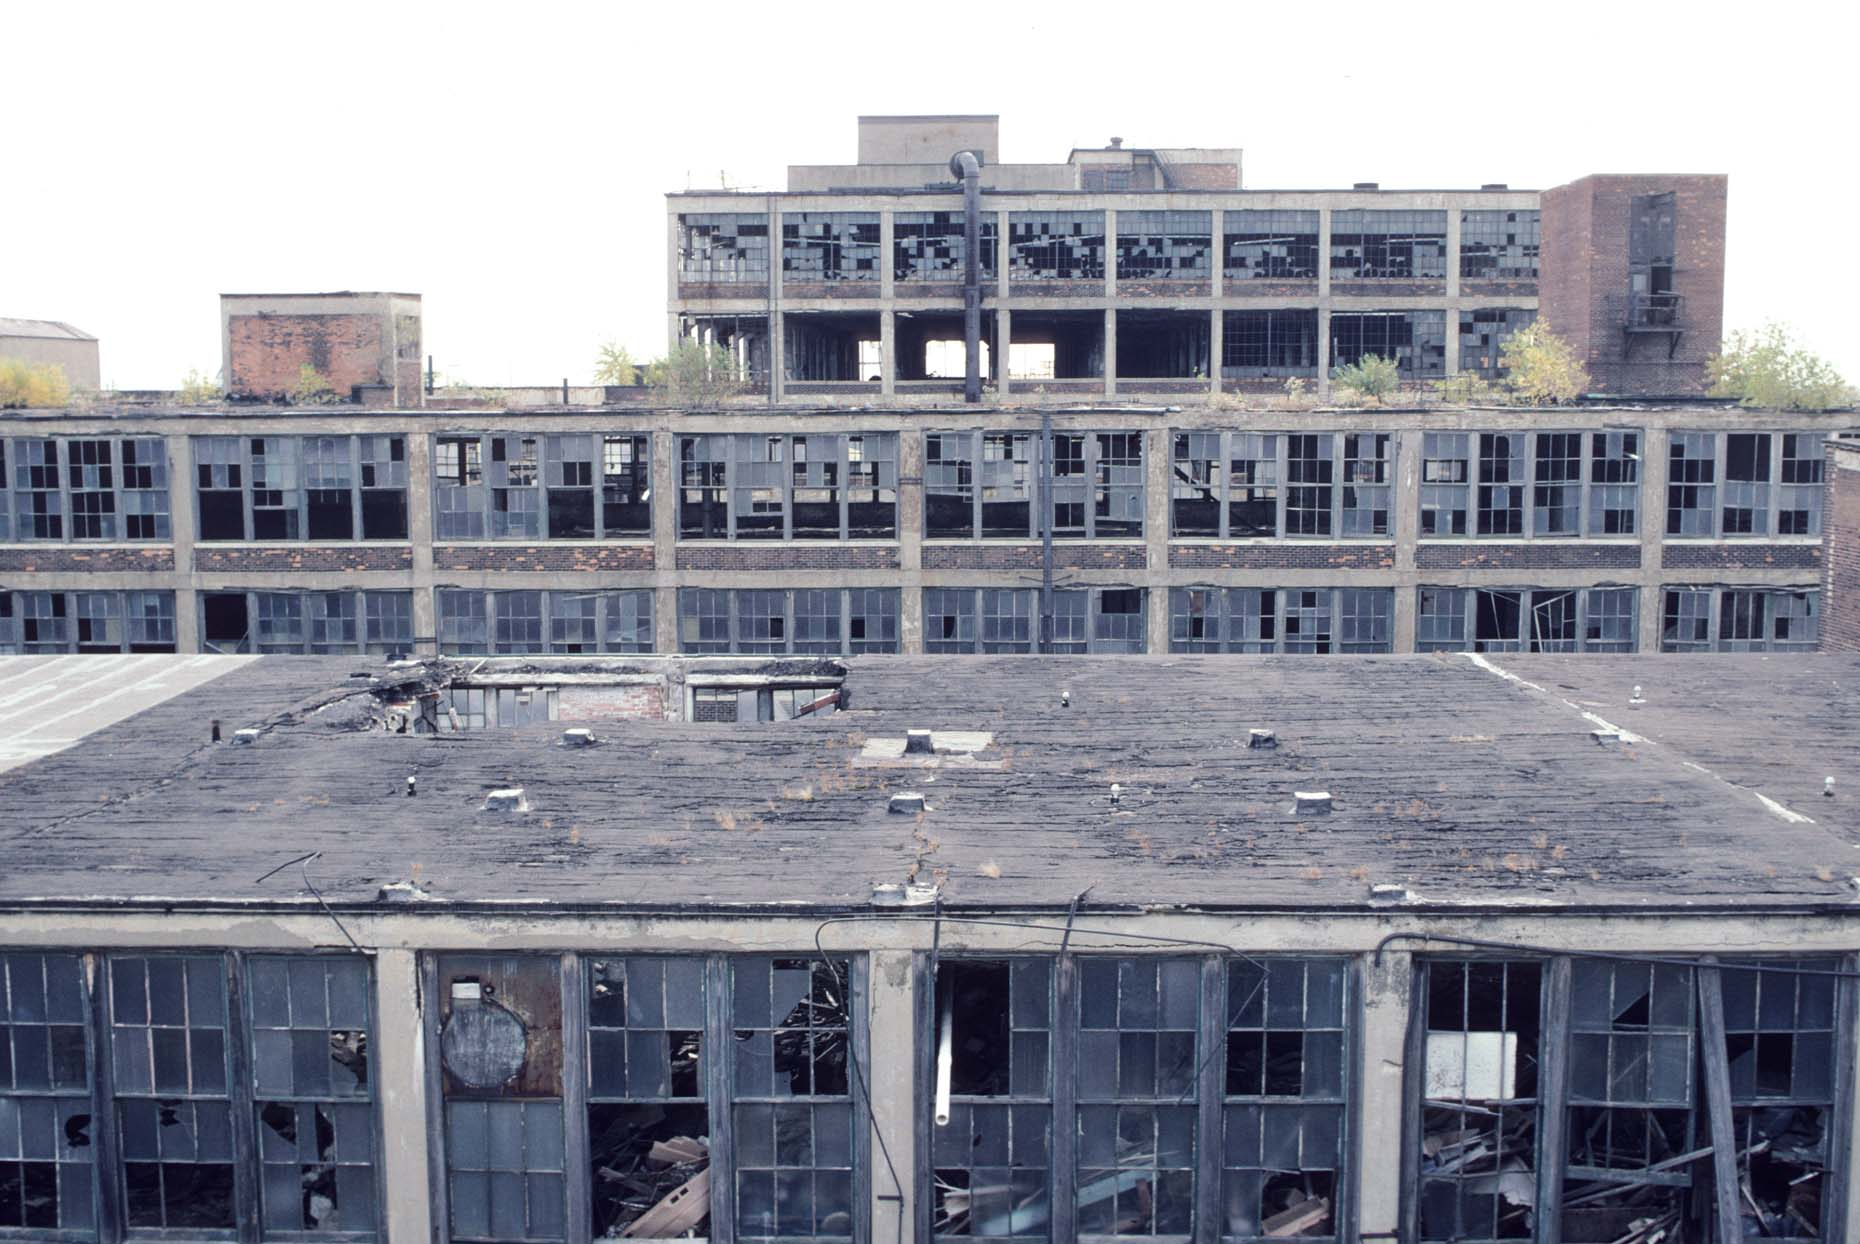 21_Former Packard Plant, East Grand Blvd. at Concord, Detroit, 2000_.jpg